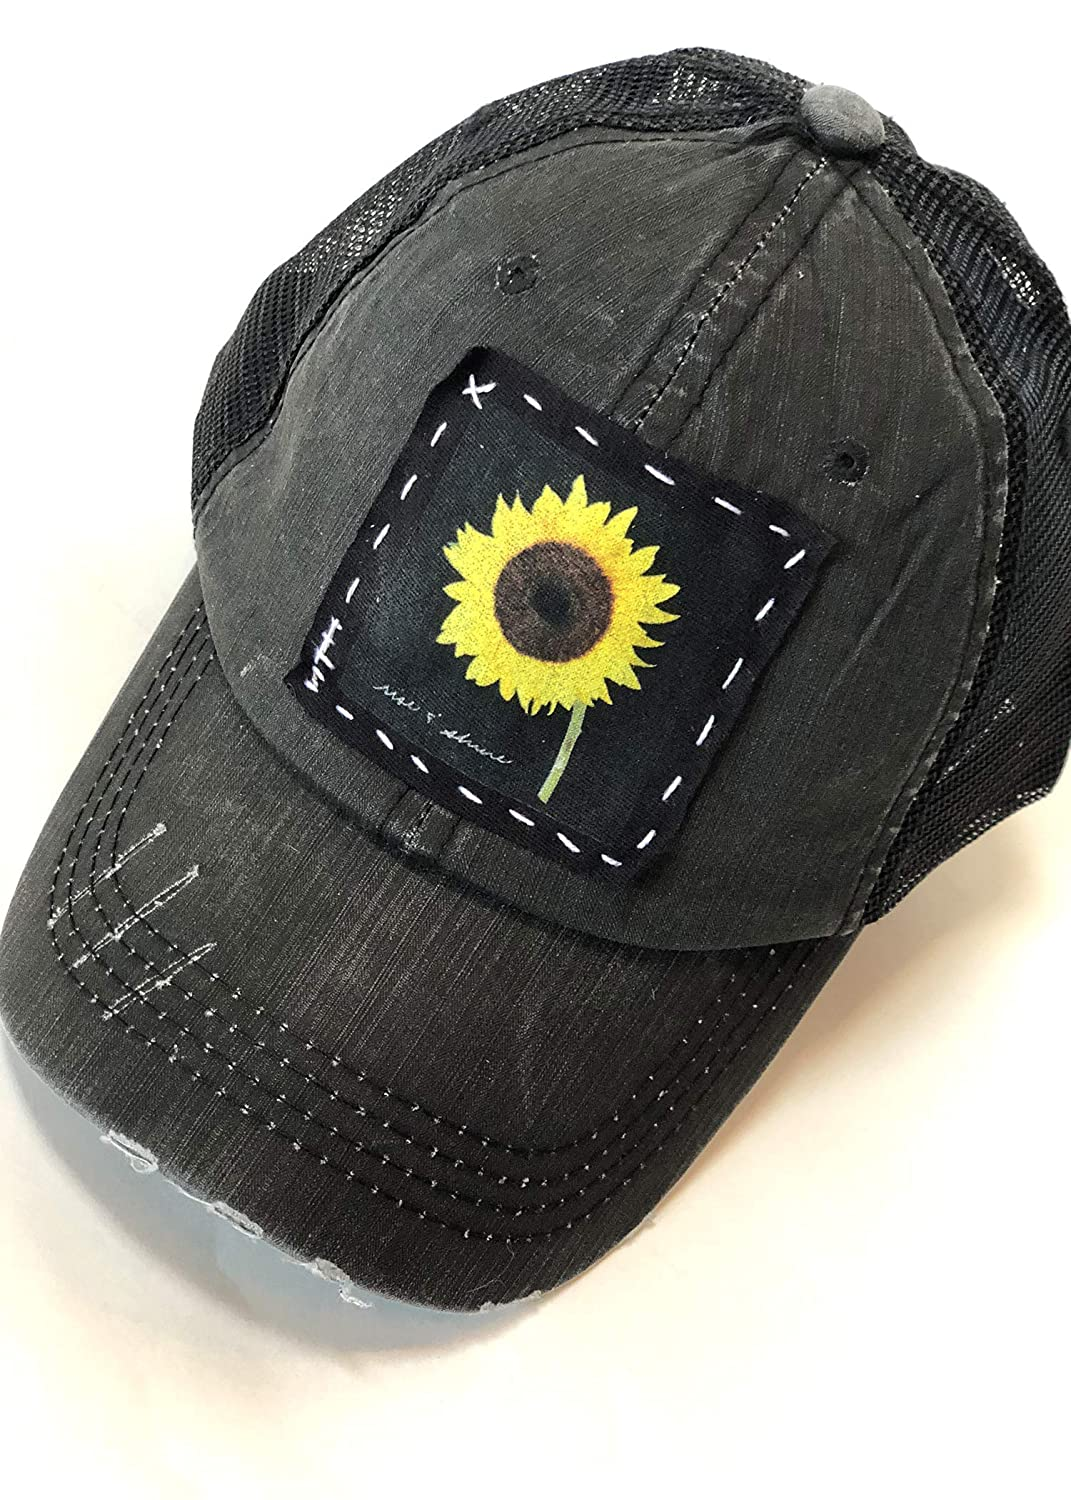 bc1621a1c Distressed Trucker Hat with Rise and Shine Sunflower Design in White ...